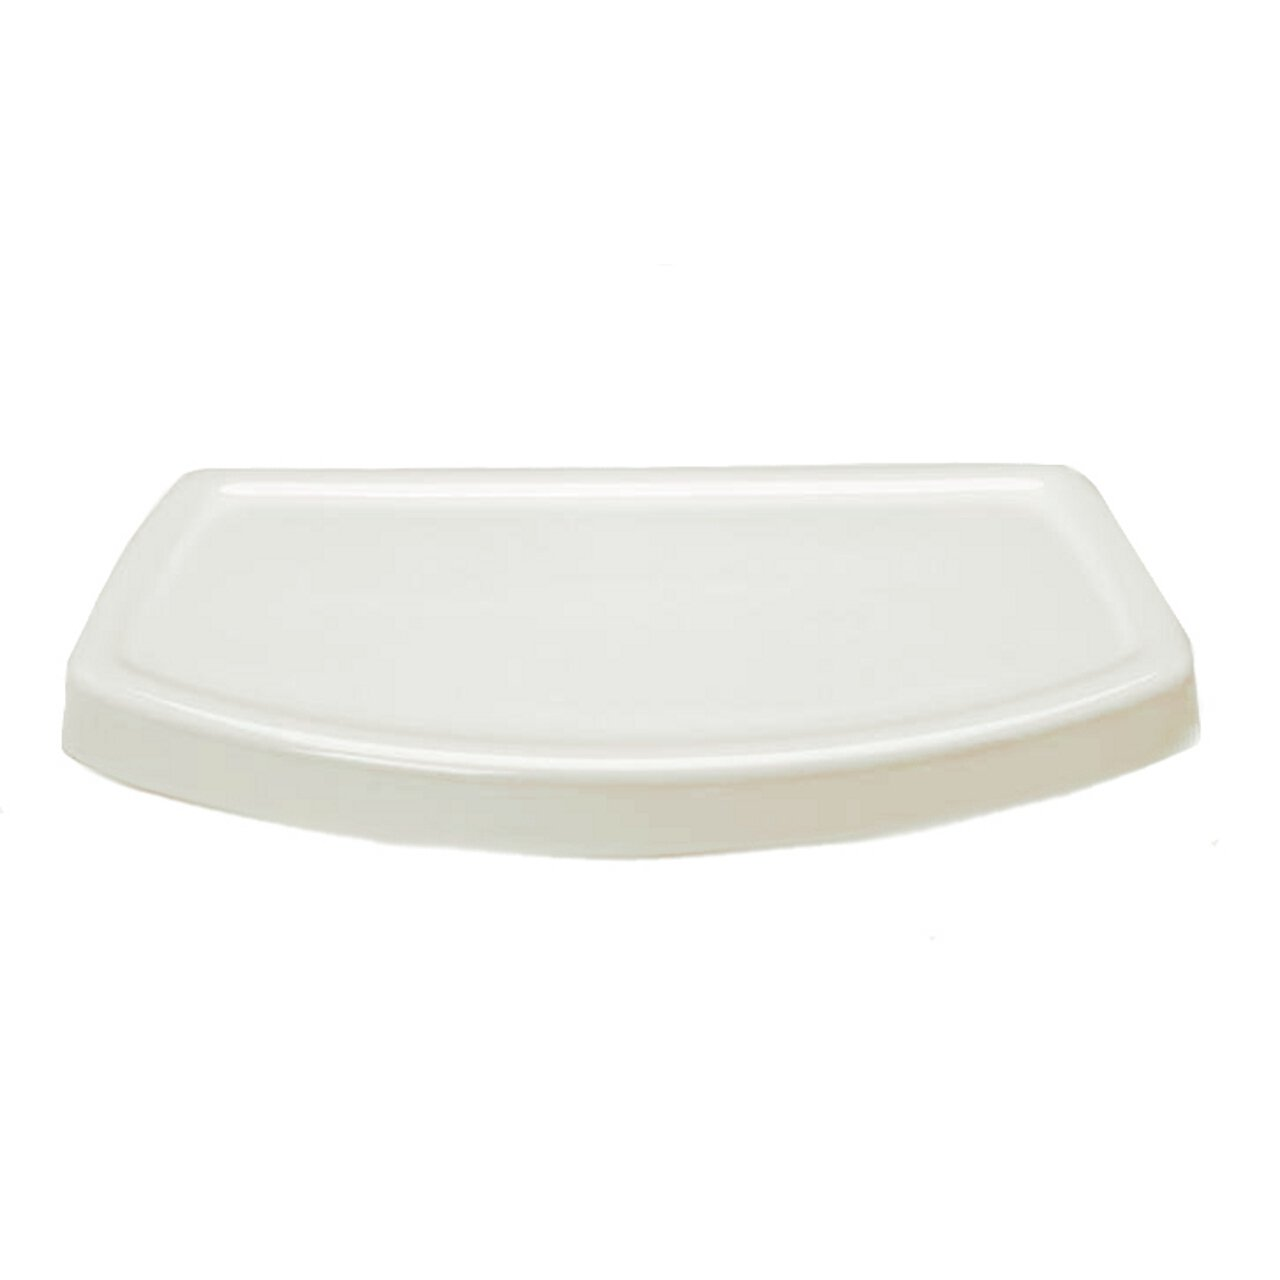 American Standard 735121-400.222 Cadet and Glenwall Right-Height Toilet Tank Cover for Models 4021, Linen by American Standard